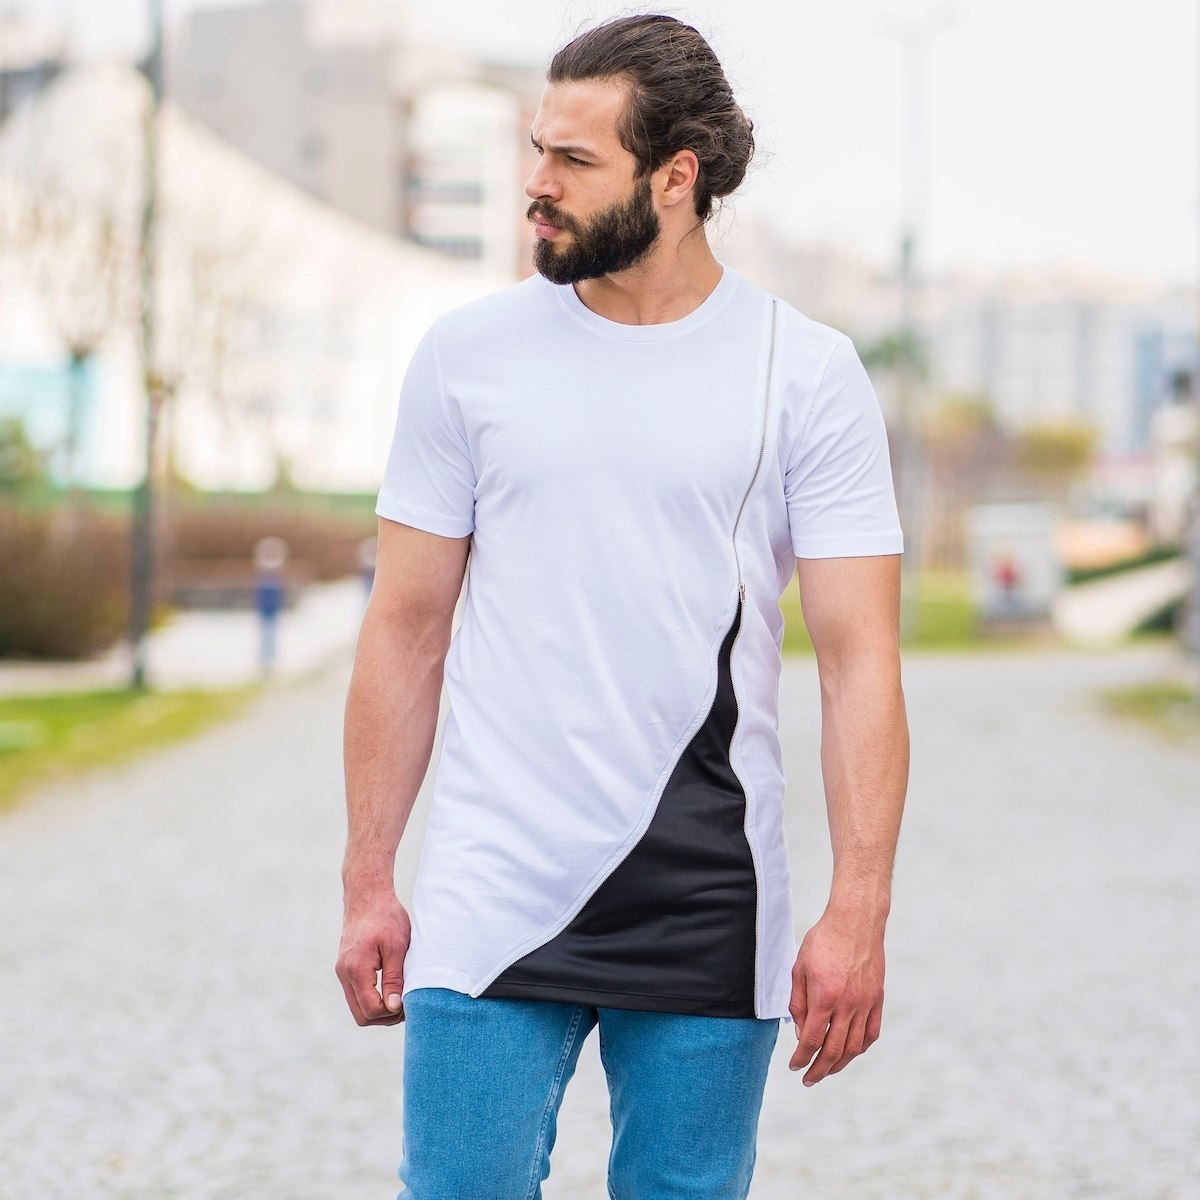 Men's Zipped Patchwork T-Shirt In White